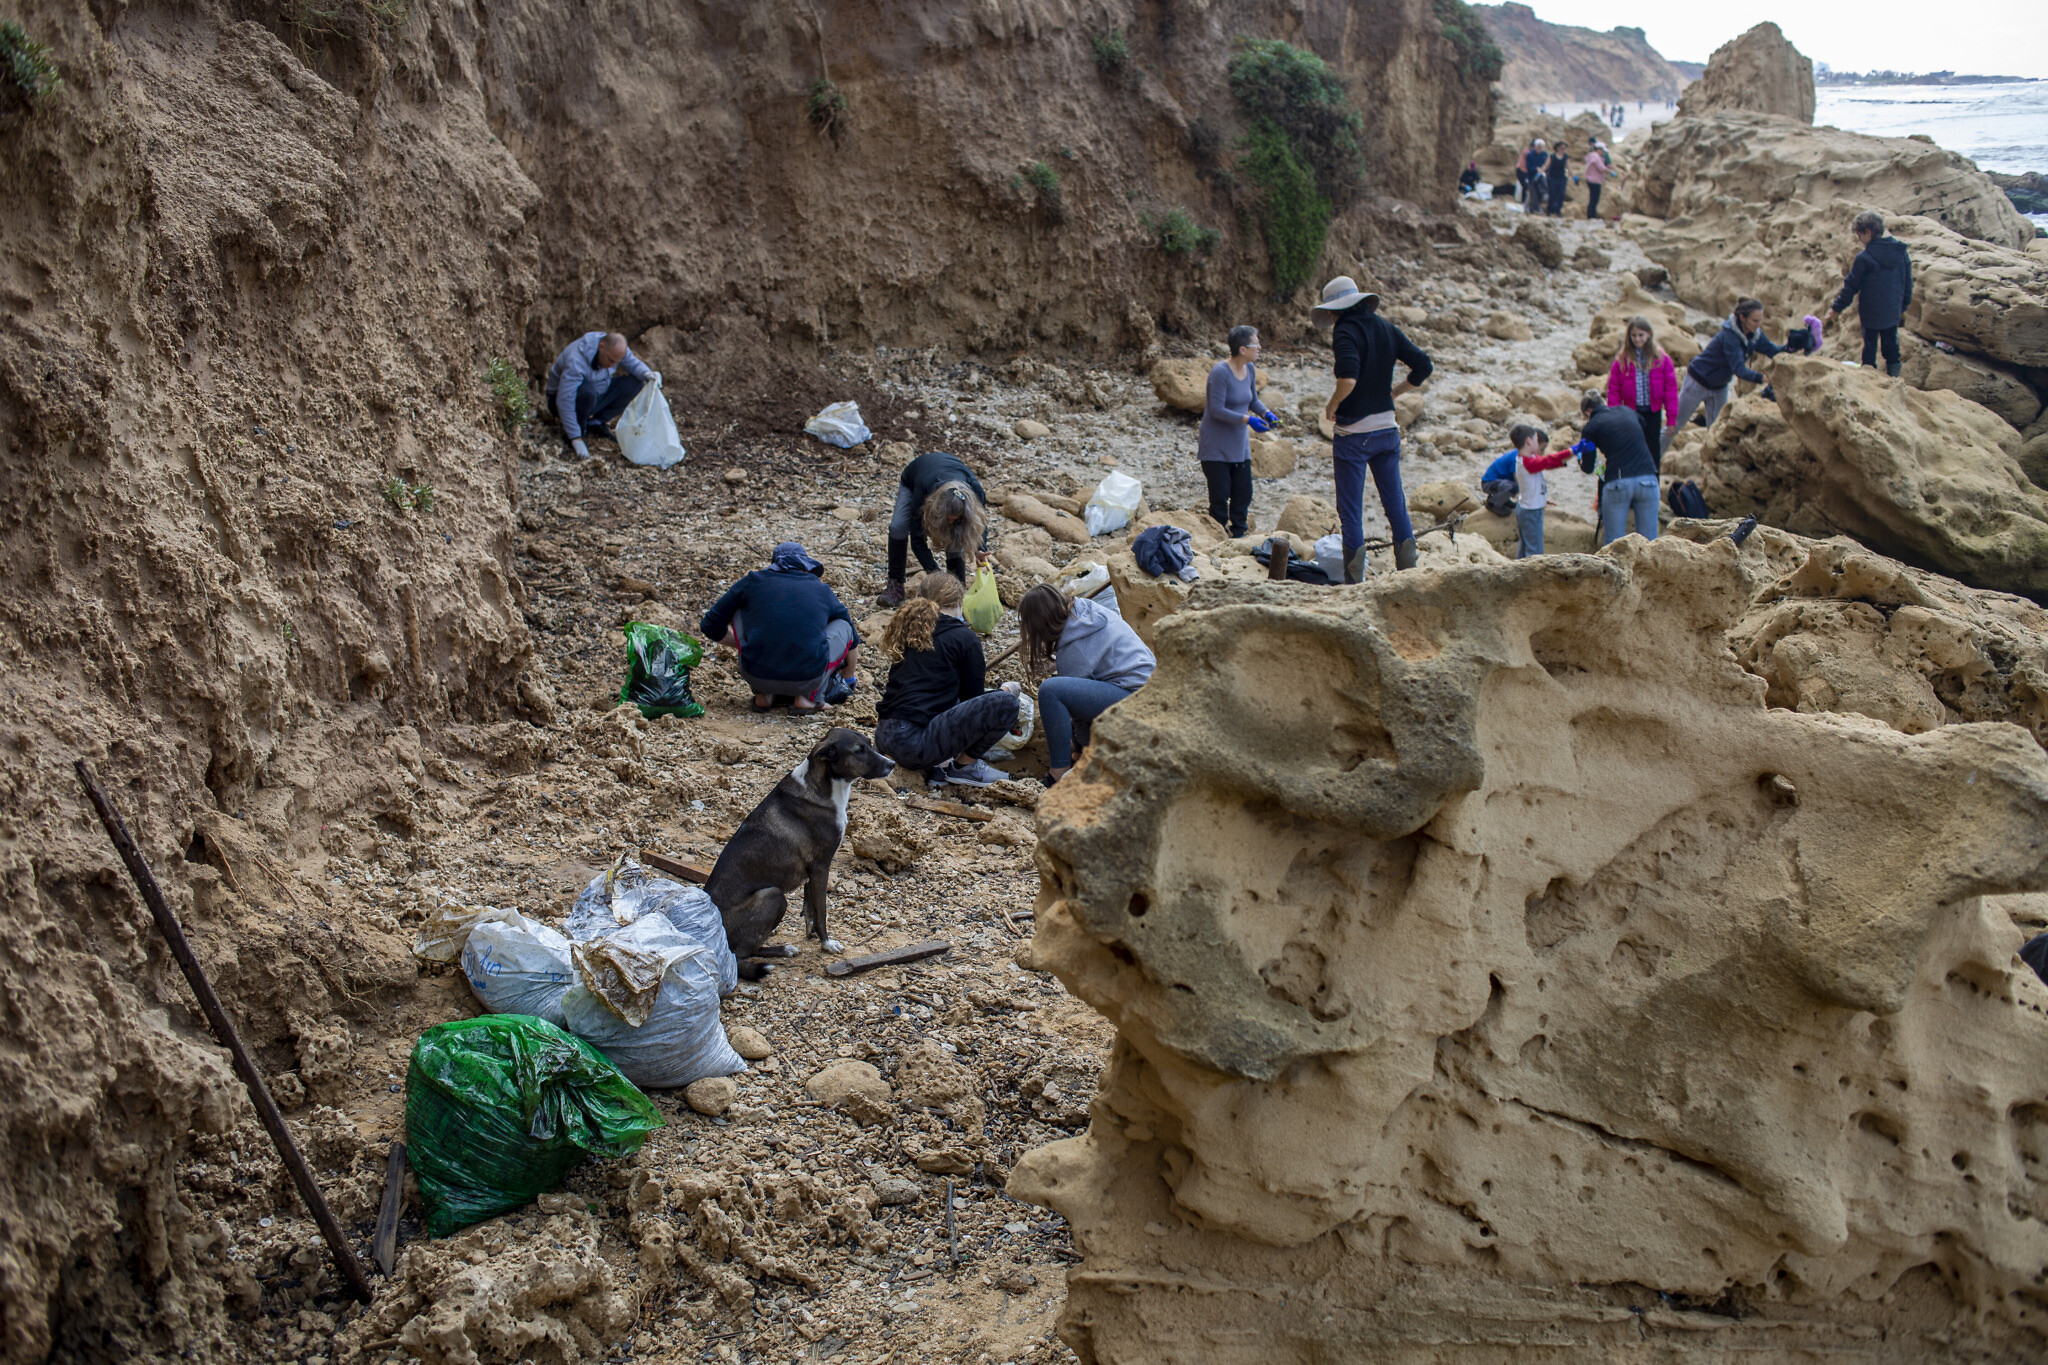 People clean tar from an oil spill in the Mediterranean sea in Gador nature reserve near Hadera, Israel, Feb. 20, 2021. (AP Photo/Ariel Schalit)